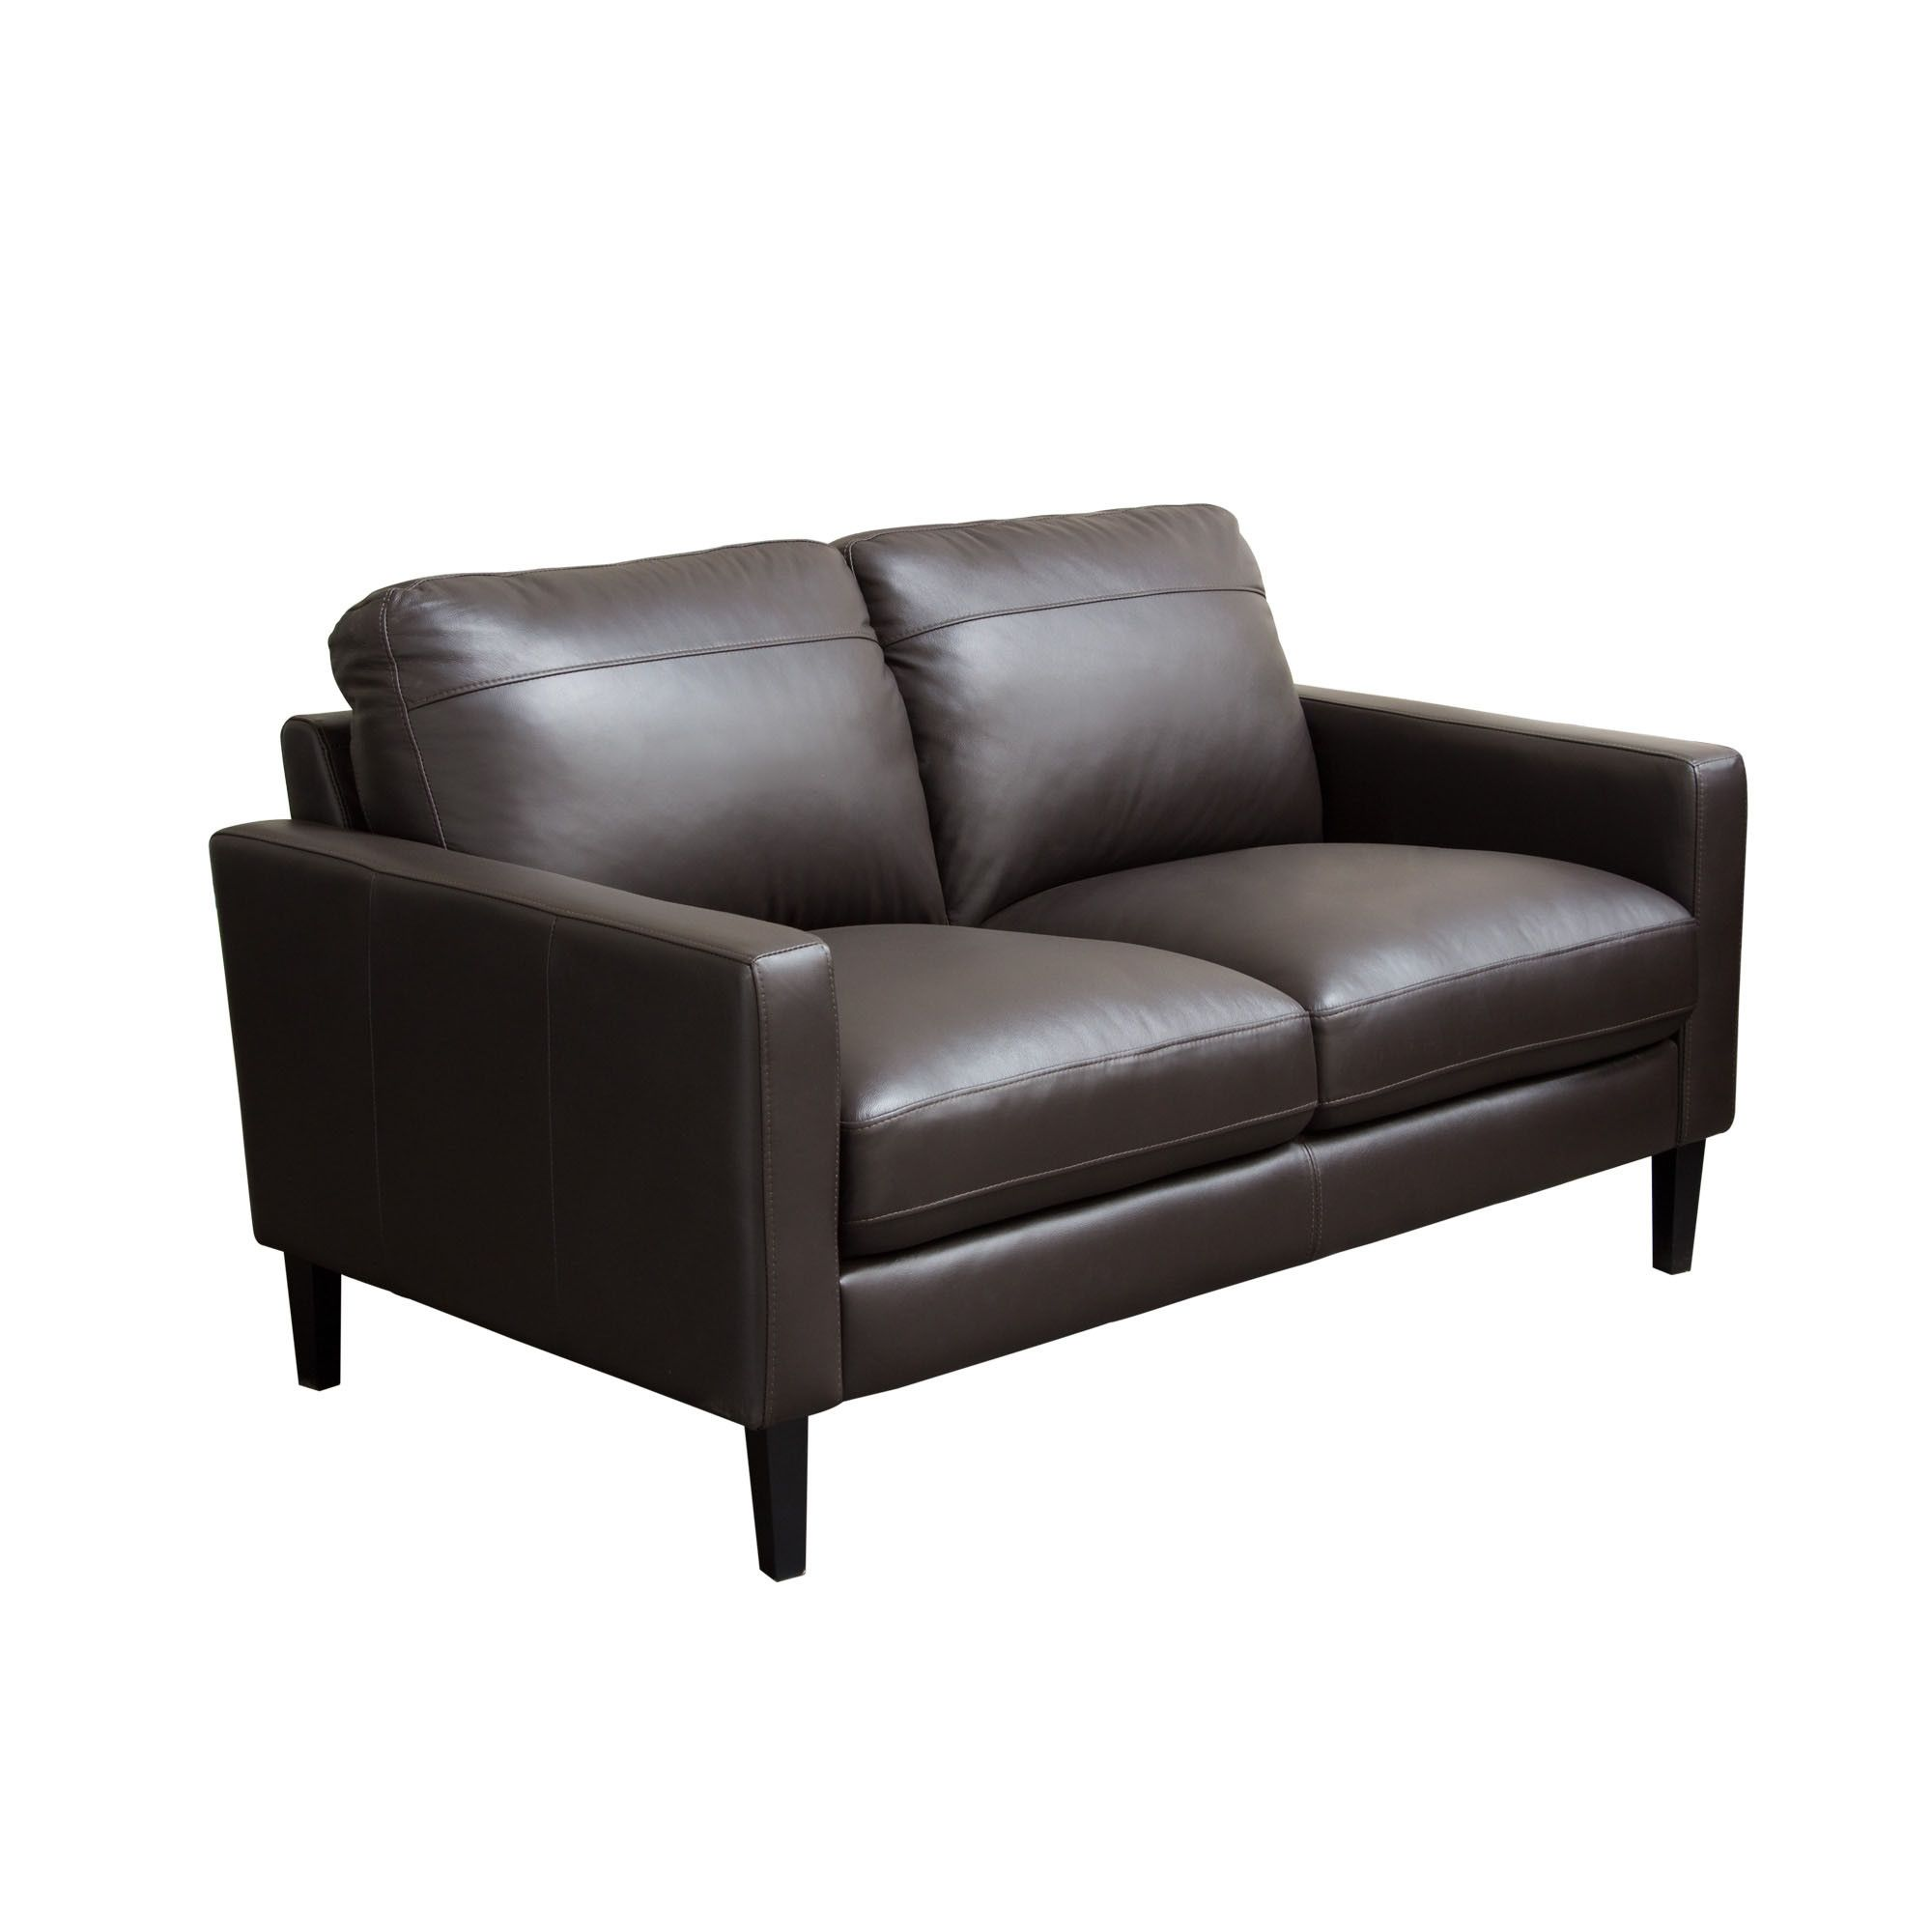 of photo sofa salemodern recliners with diamond and sets mamodern leather reclinersmodern reclining sofas size concept modern sectional full boston loveseat loveseatmodern on exquisite